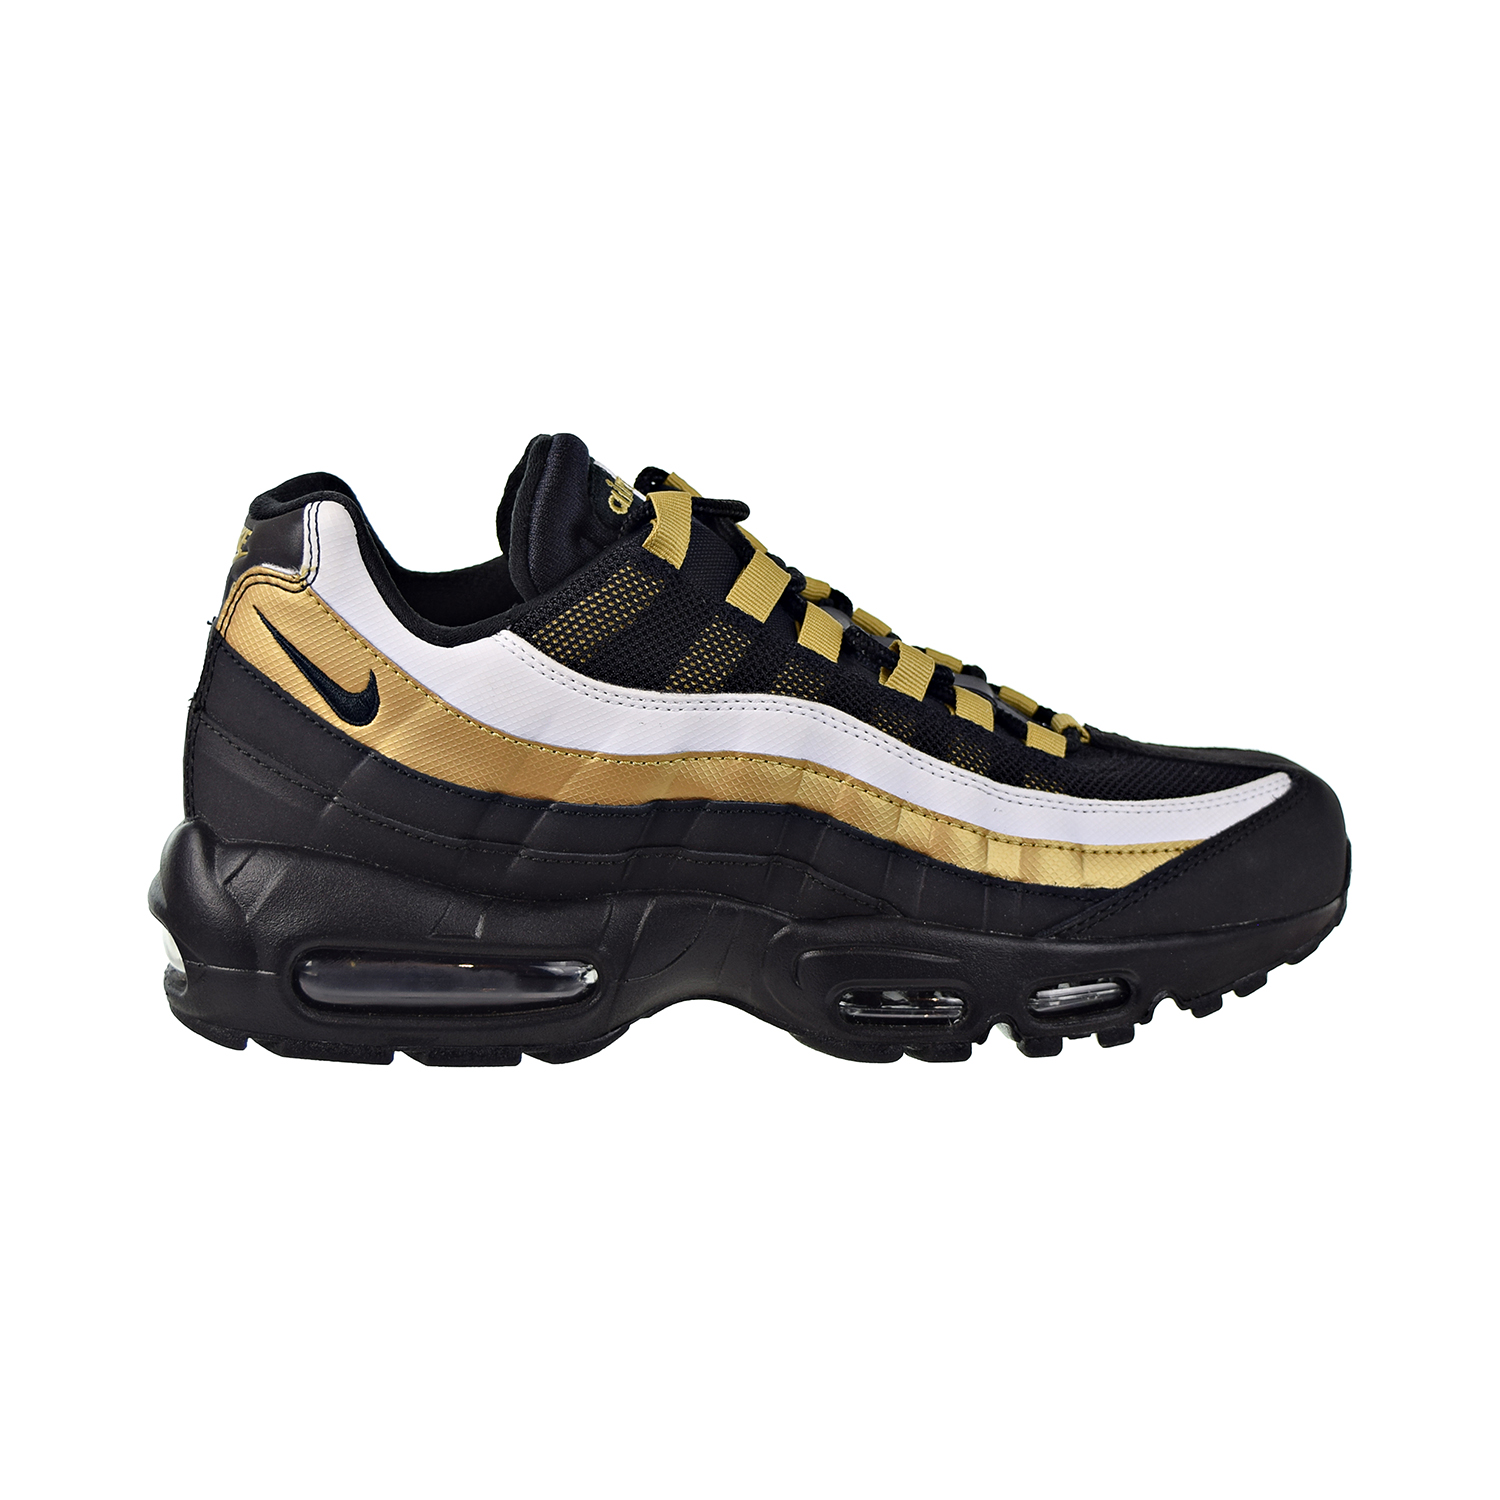 various designs Nike Air Max 95 AT2865 002 Release Info